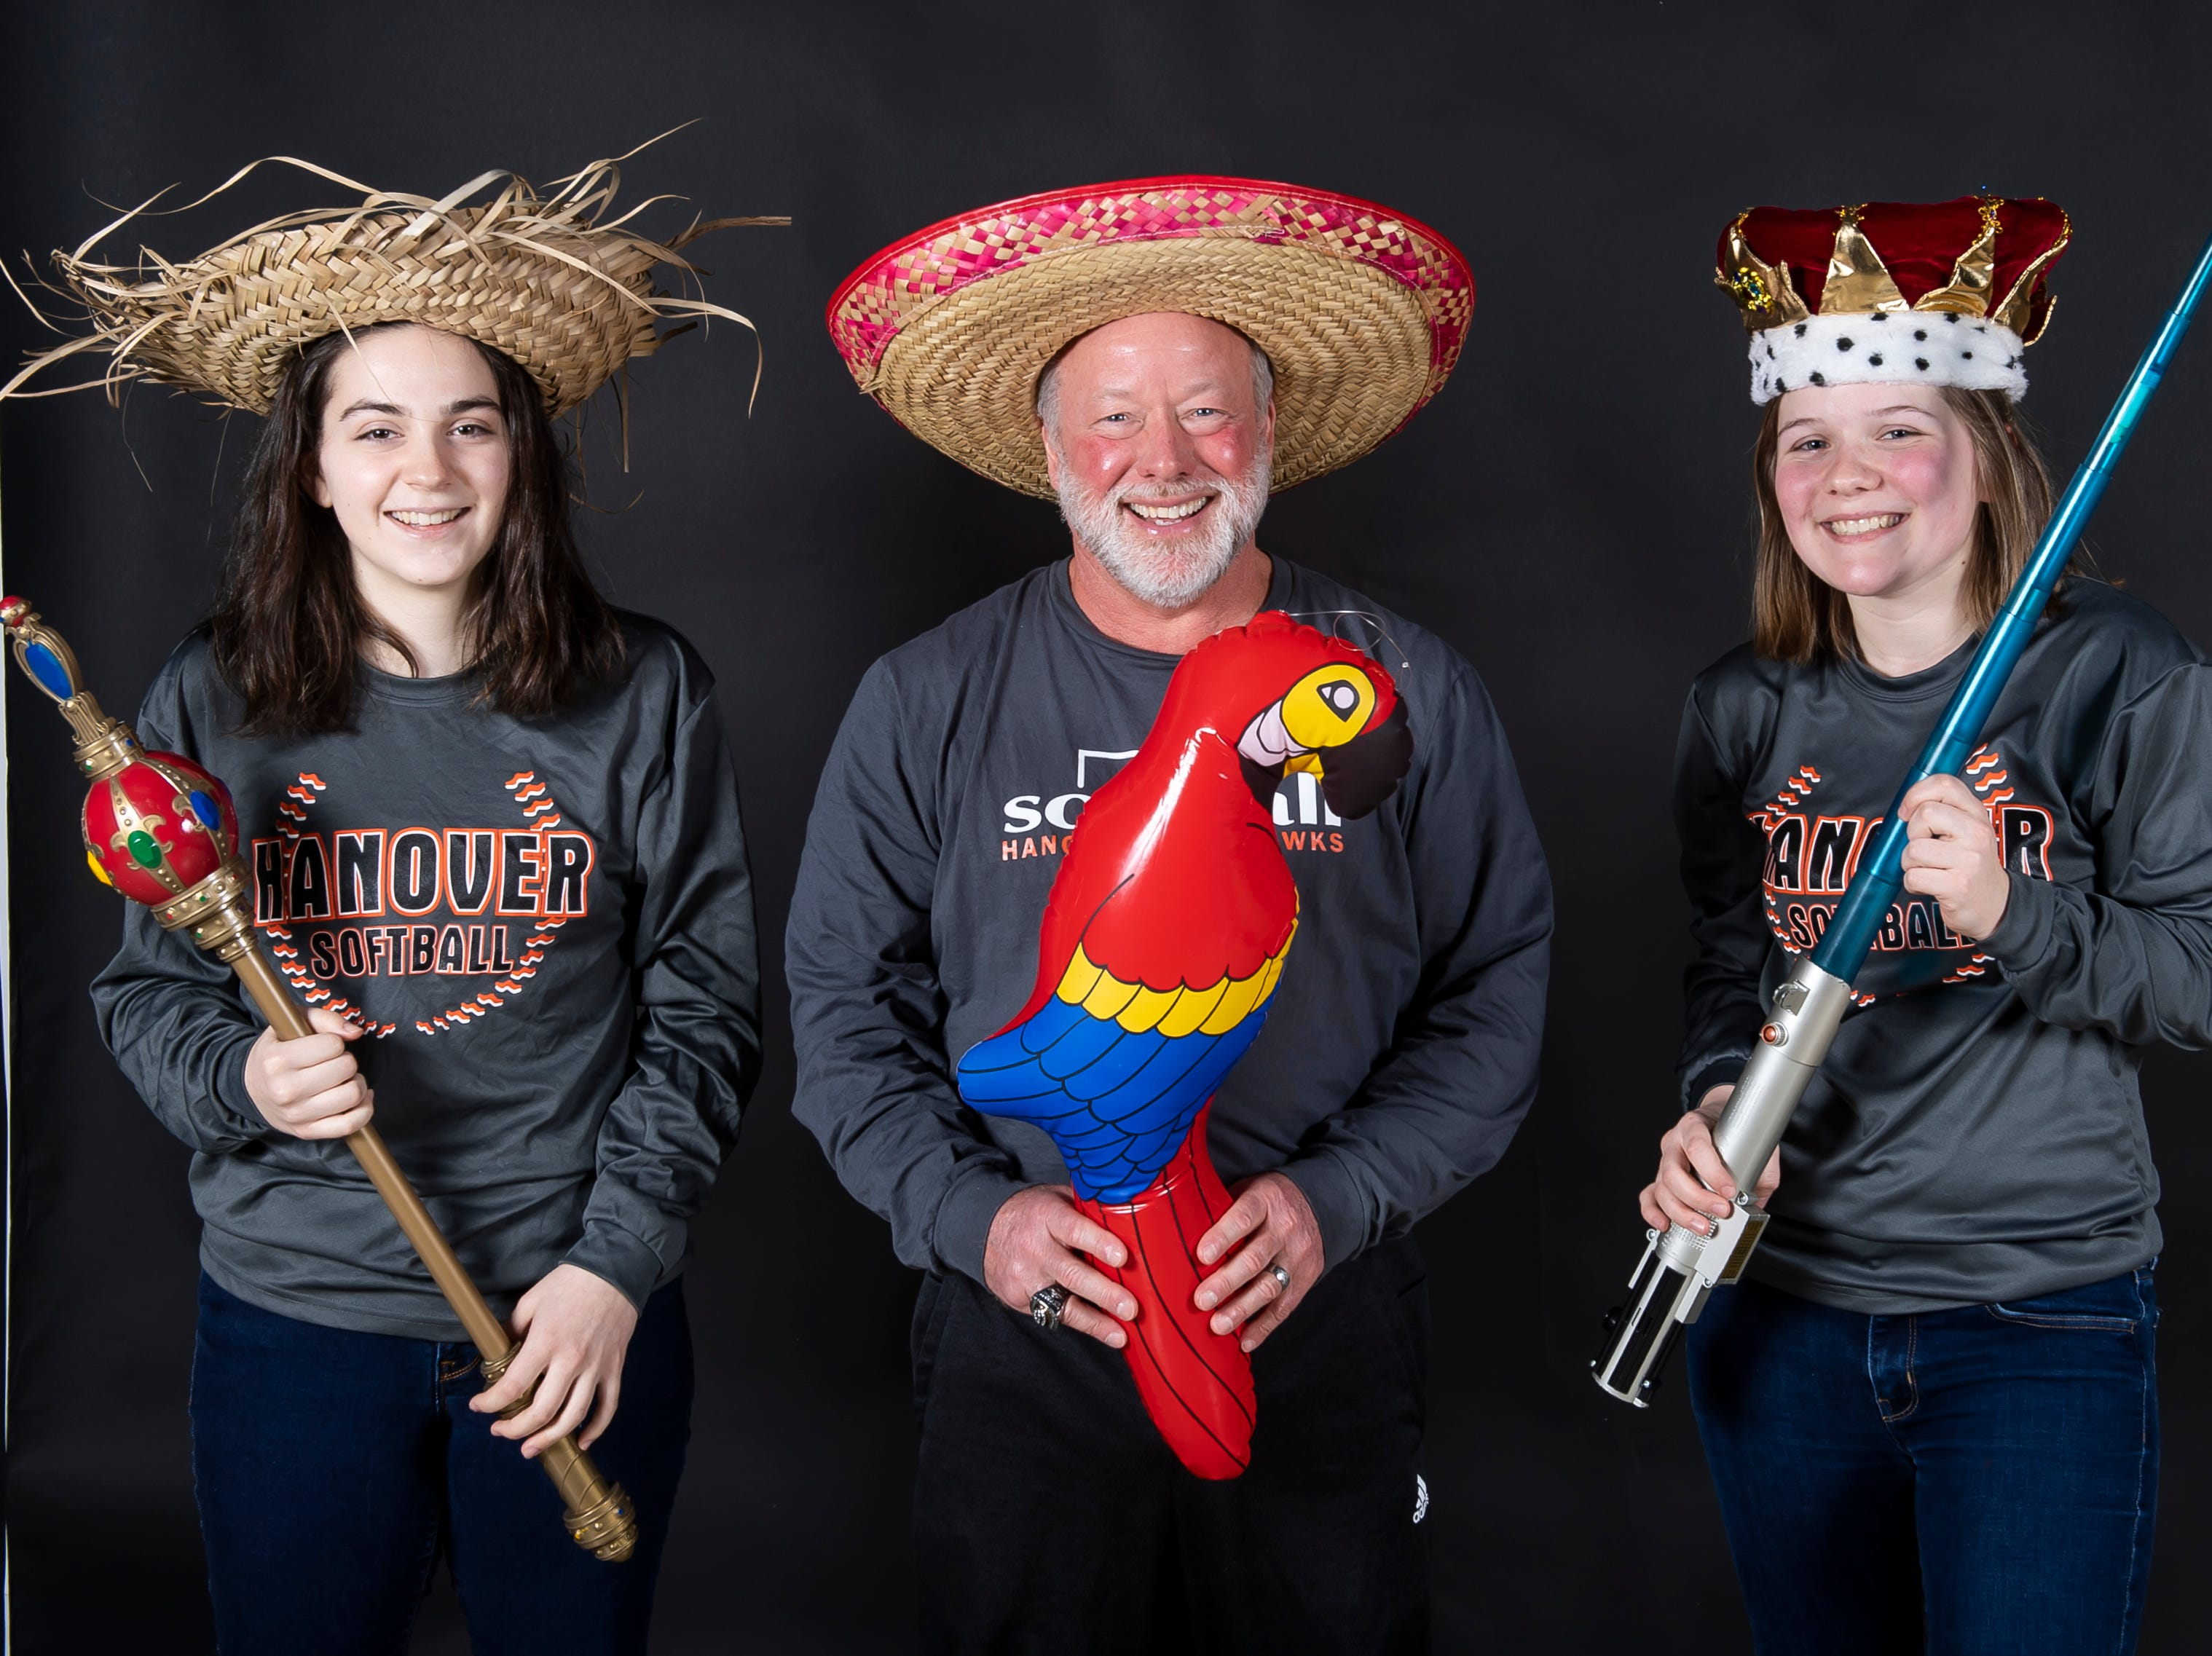 (From left) Hanover softball's Emily Hann, coach Henry Wardrop and Sierra Stevens strike a pose in the GameTimePA photo booth during spring sports media day in York Sunday, March 10, 2019.